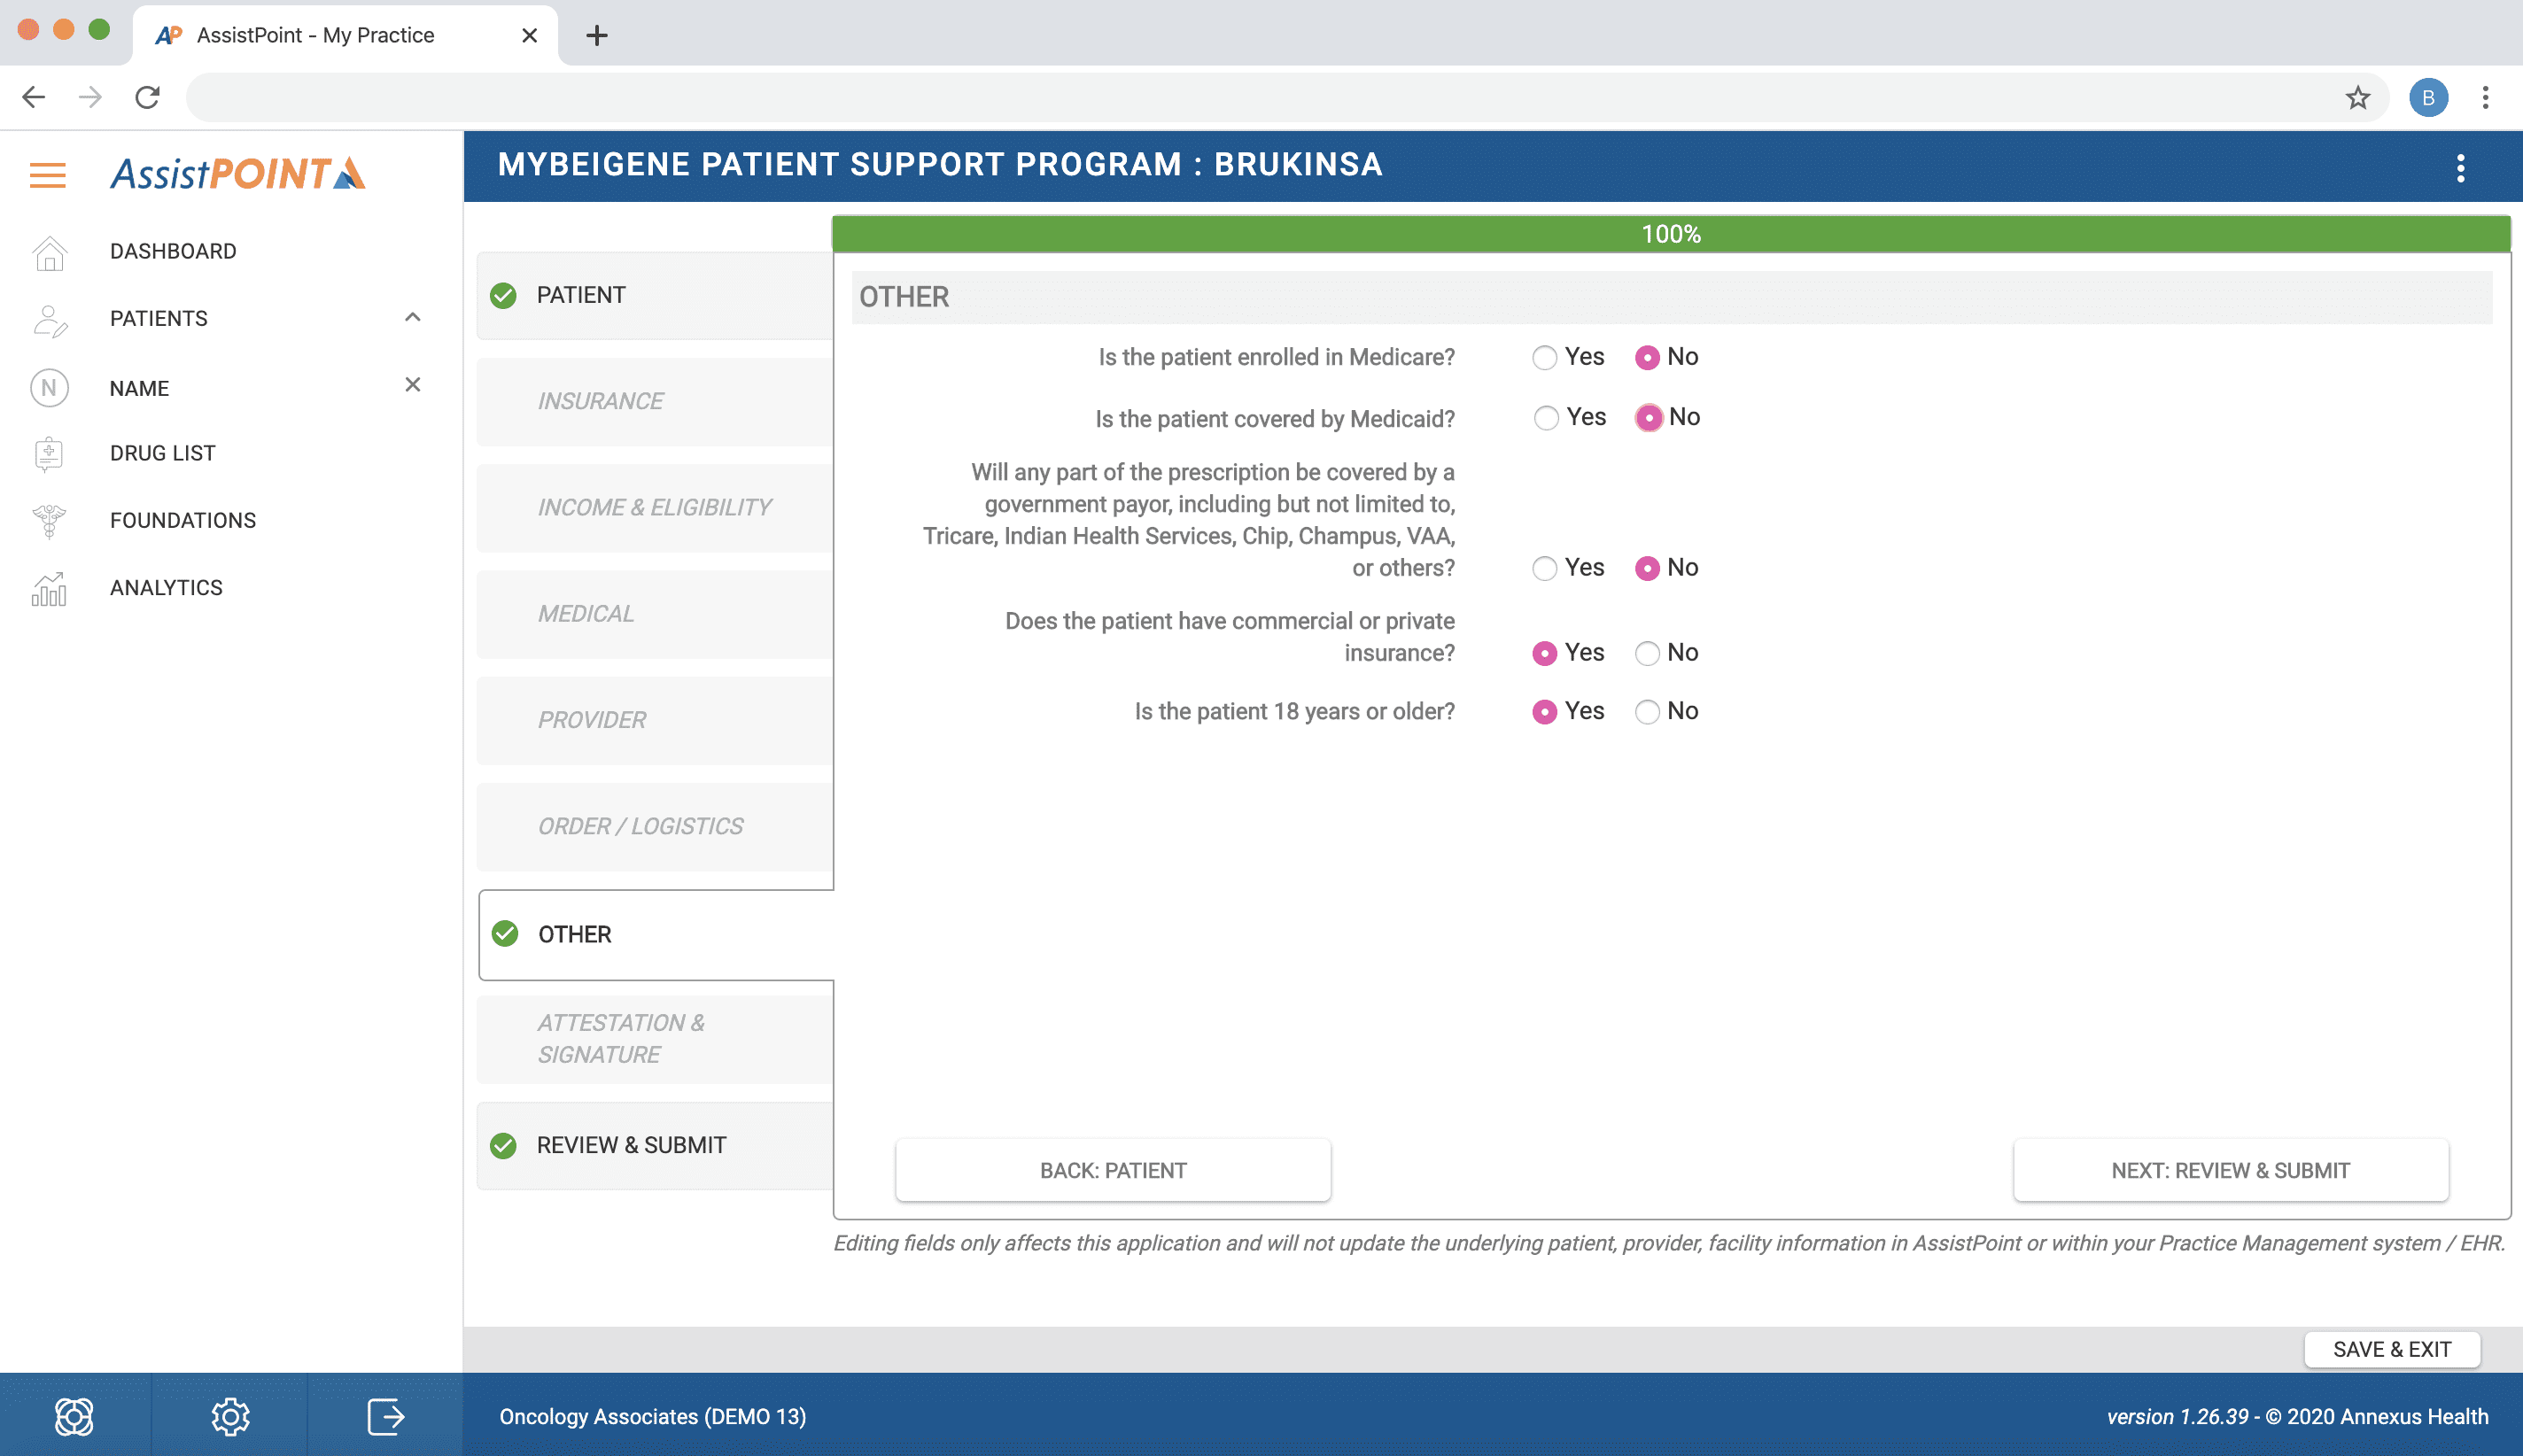 Screenshot of Life Science's functionality of AssistPoint - Screen 4